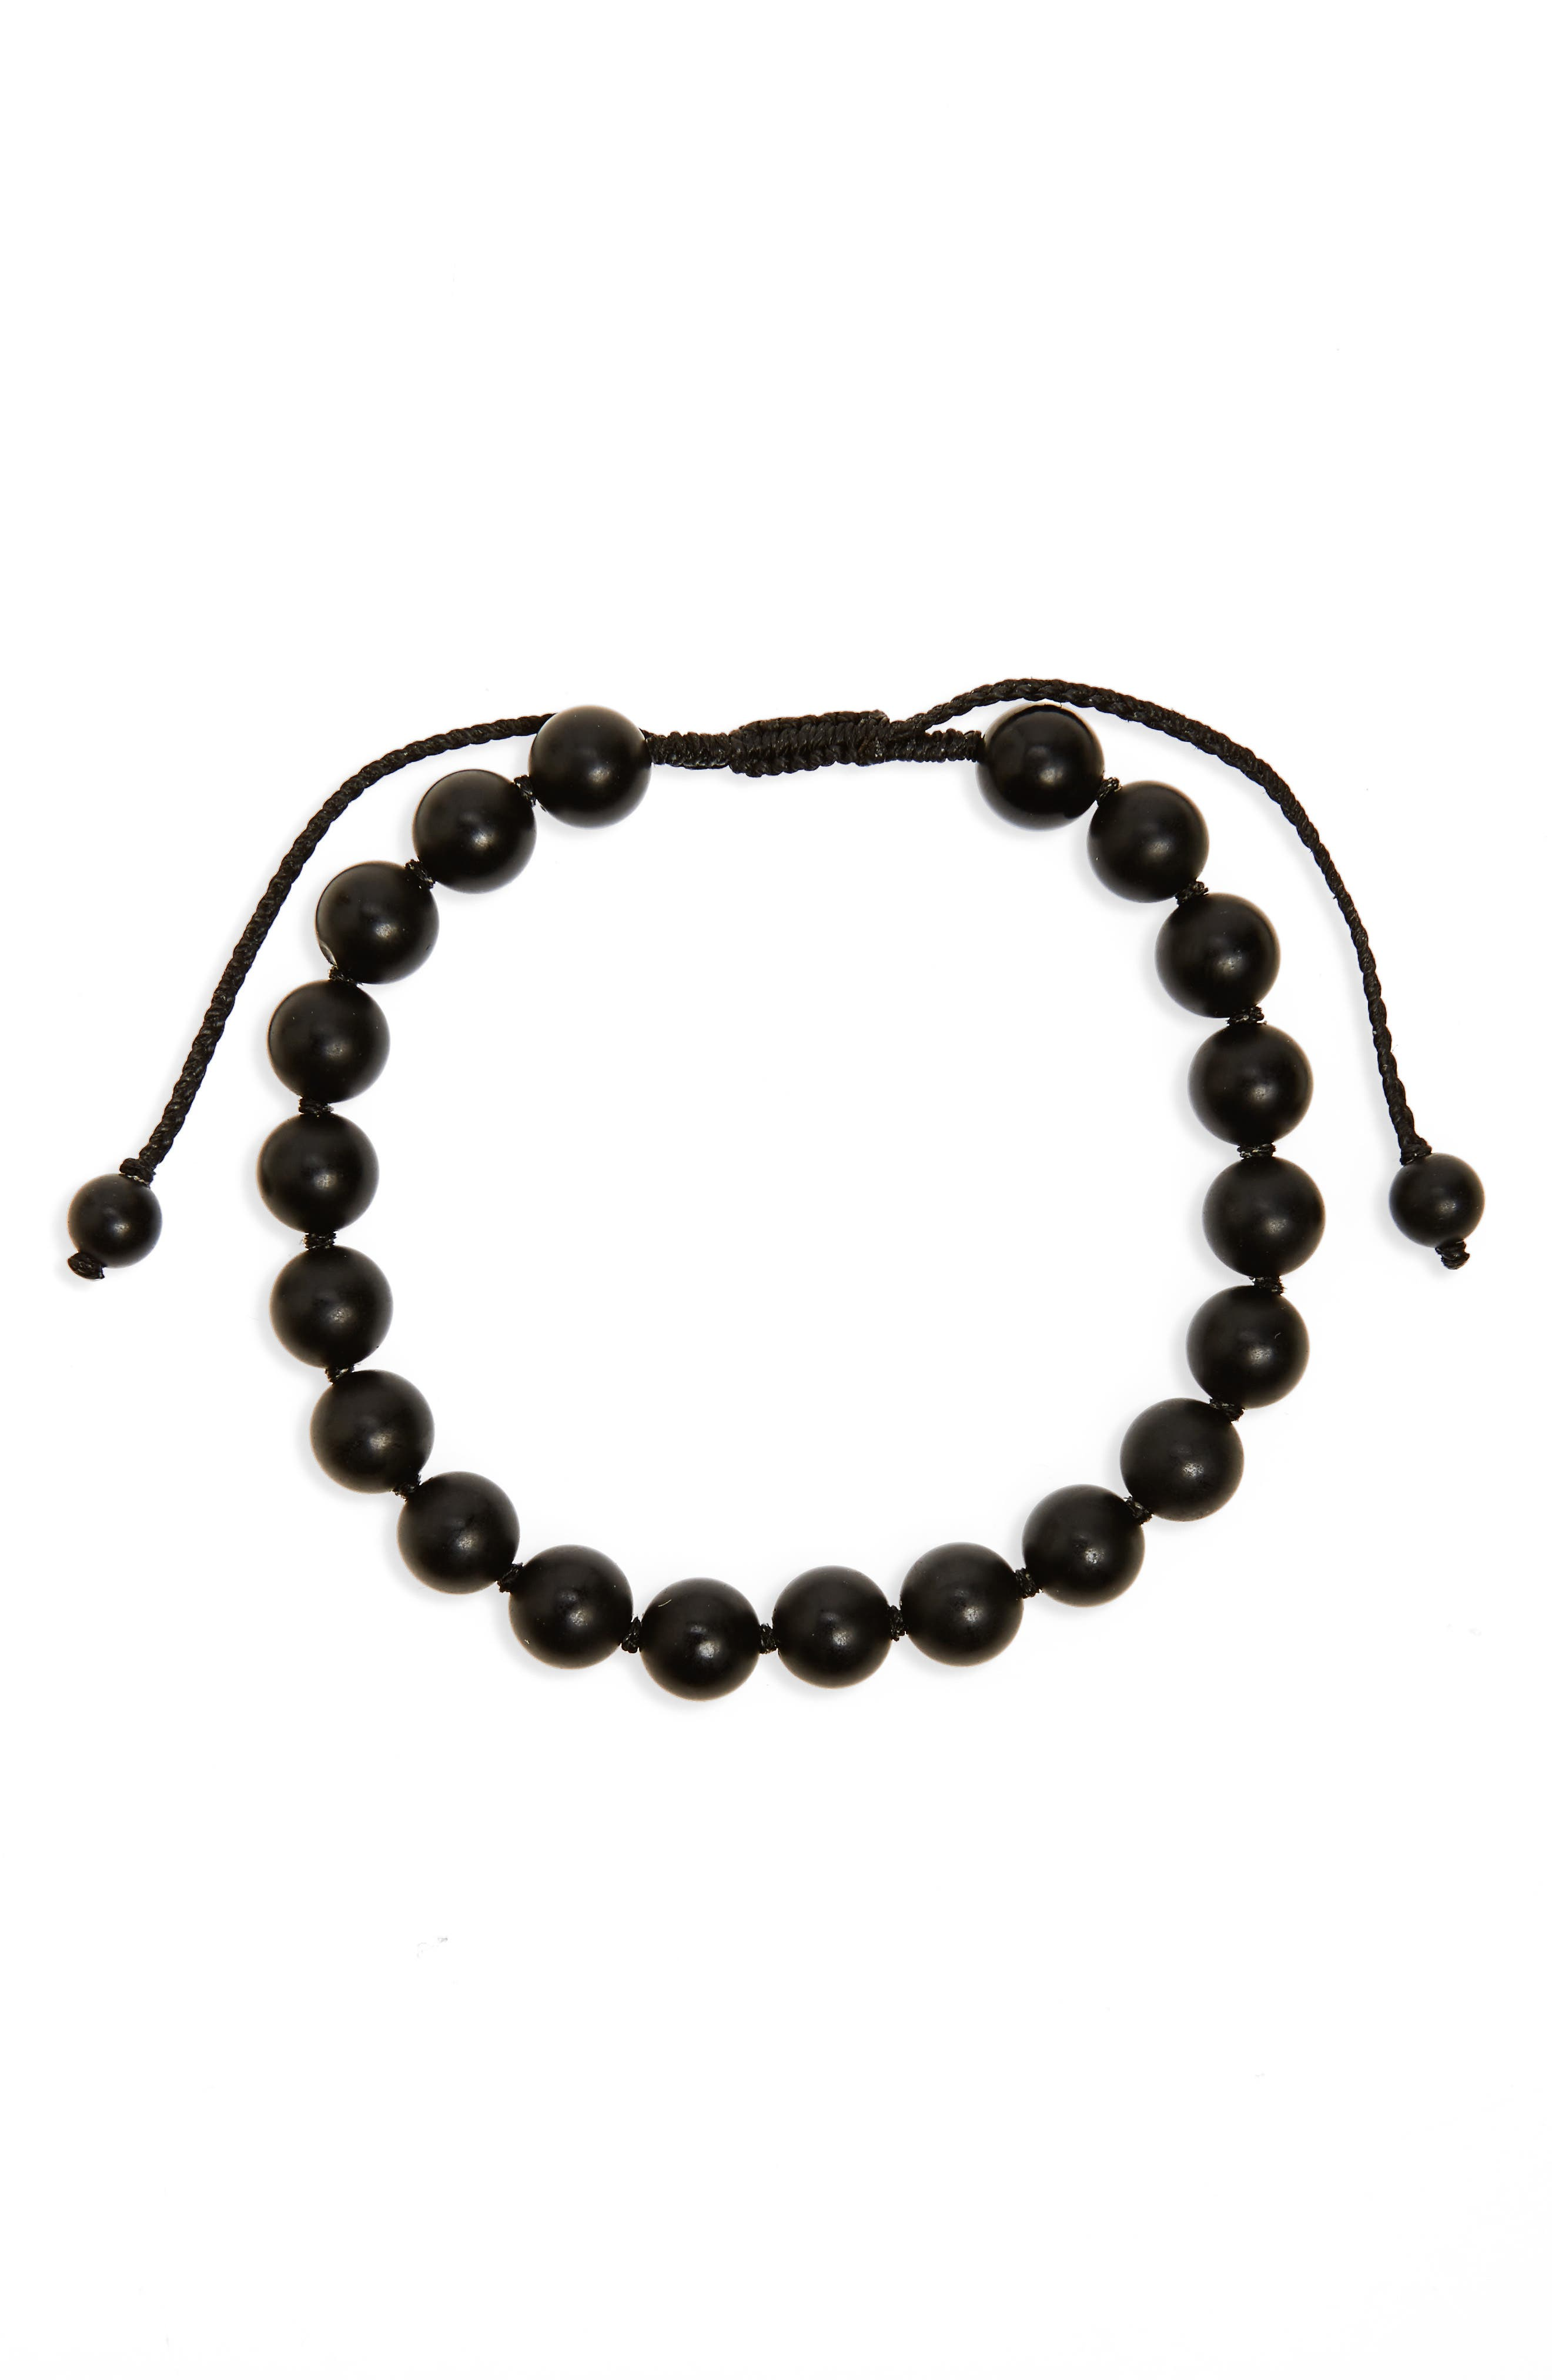 Onyx Bead Bracelet,                             Main thumbnail 1, color,                             Black